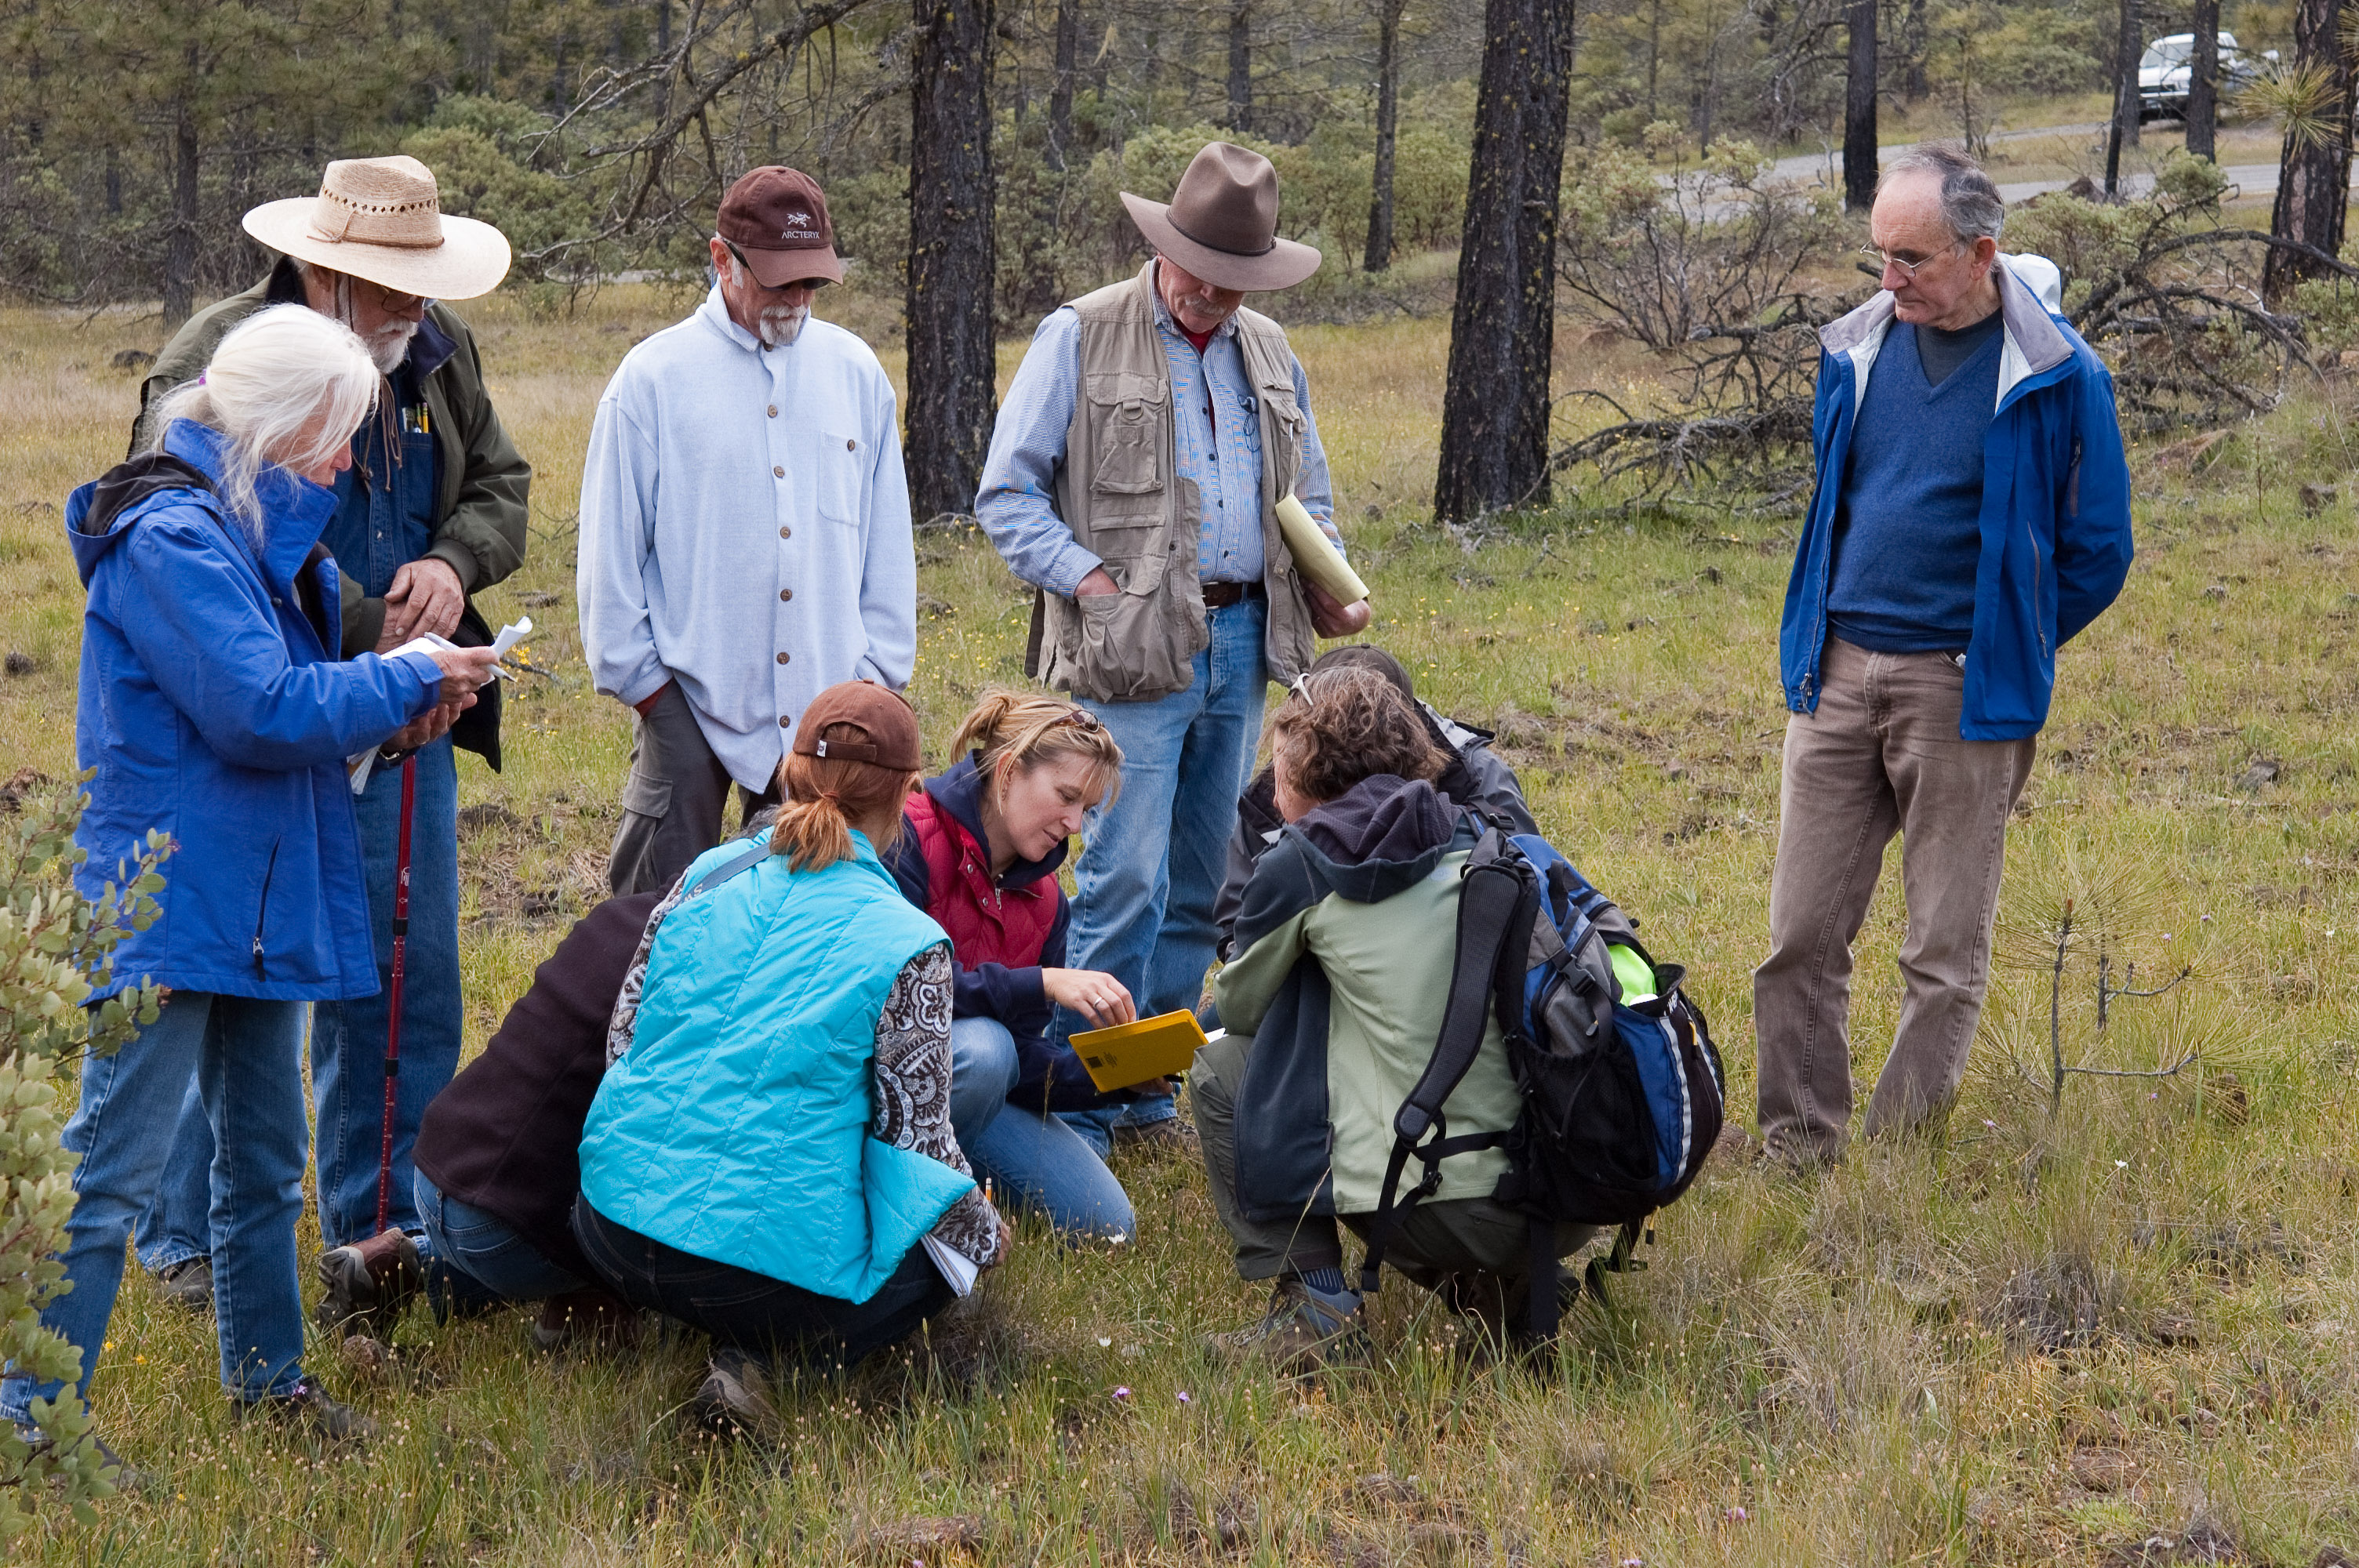 Grass workshop hosted by the Siskiyou Field Institute at Deer Creek Center. Photo by Robert Korfhage.